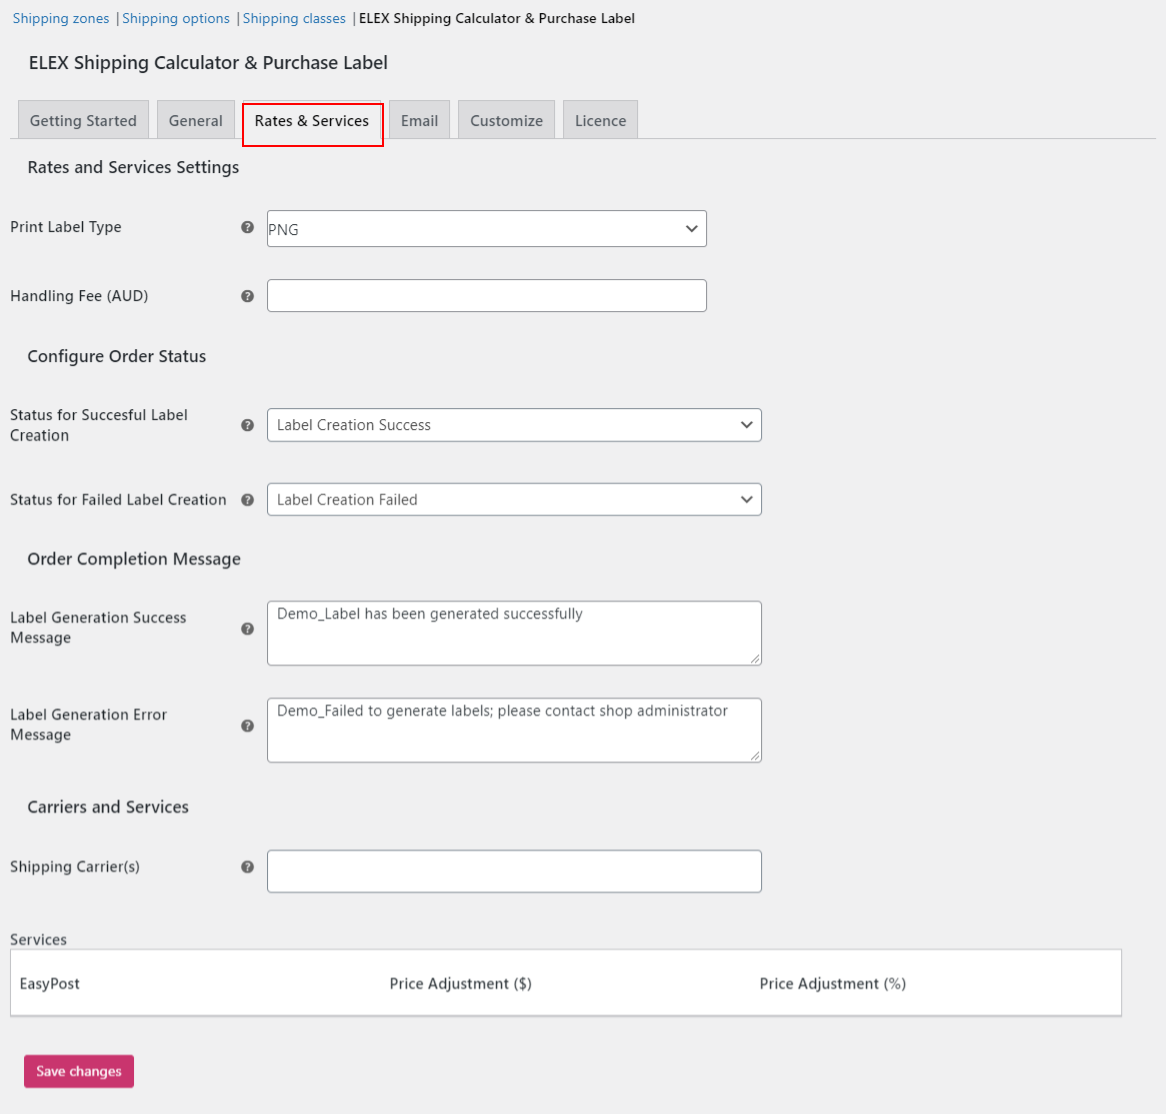 Shipping Calculator, Purchase Shipping Label & Tracking for Customers | Rates and Services settings